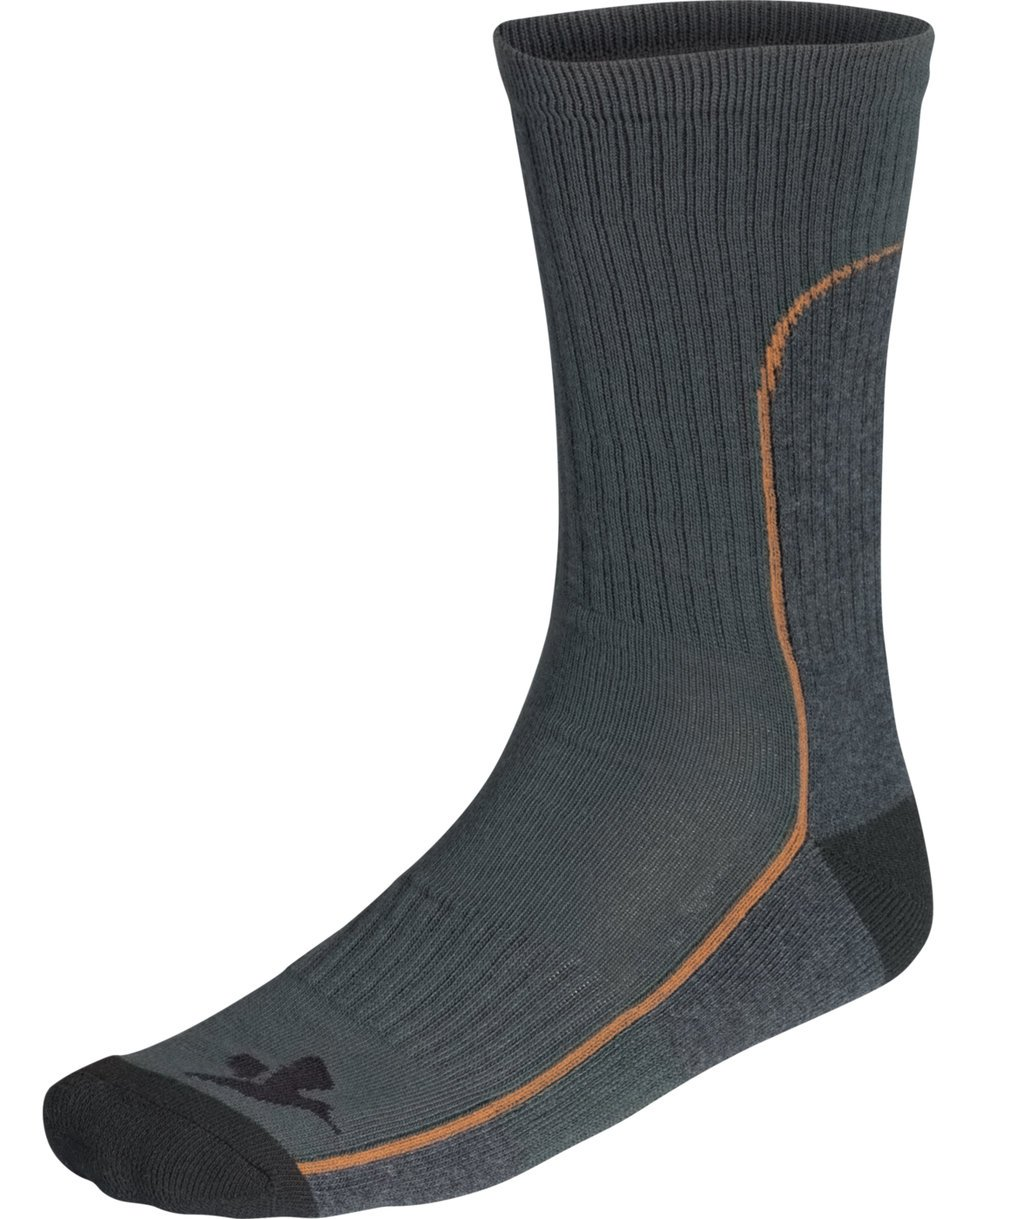 Seeland Outdoor 3-pack socks, Raven